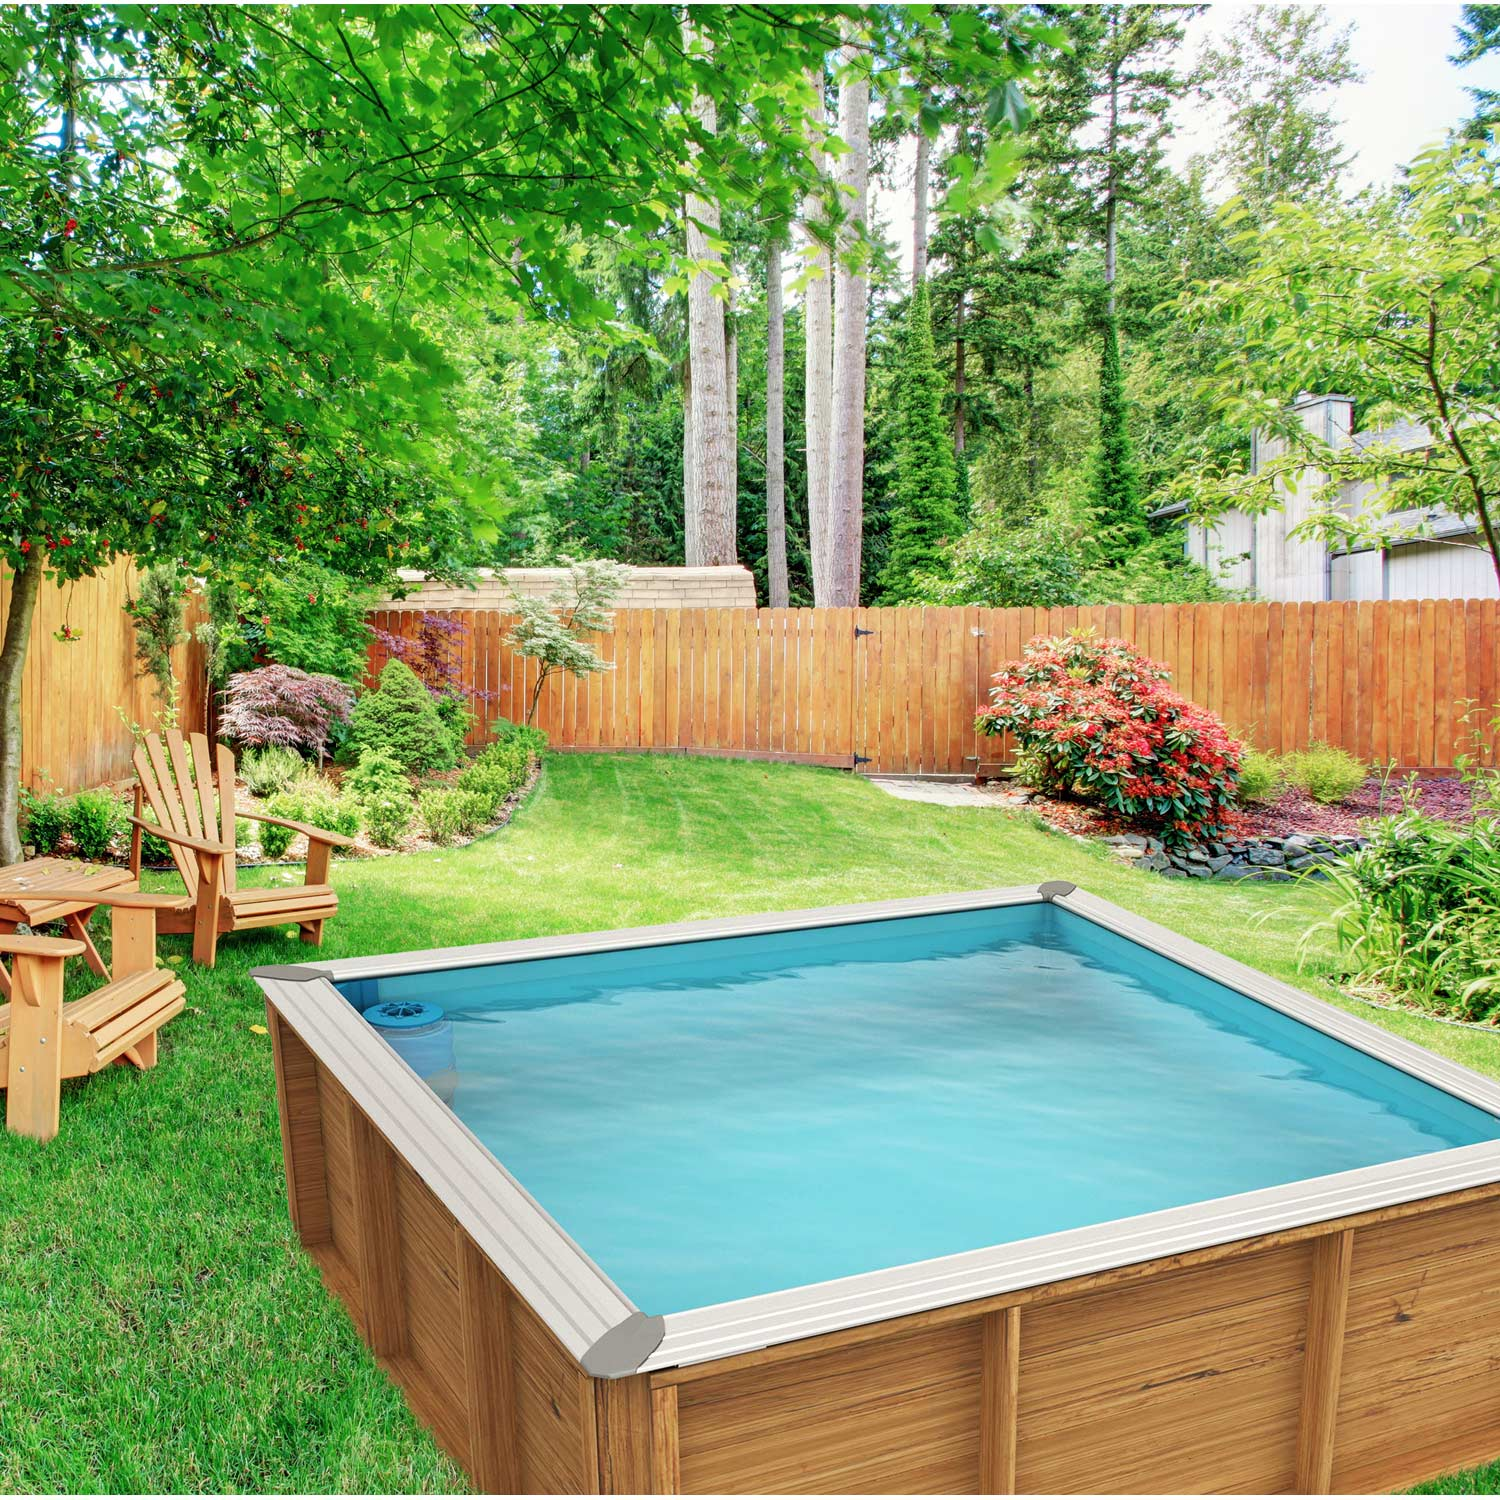 Piscine hors sol bois pistoche l x l x h m for Piscine hors sol imposable